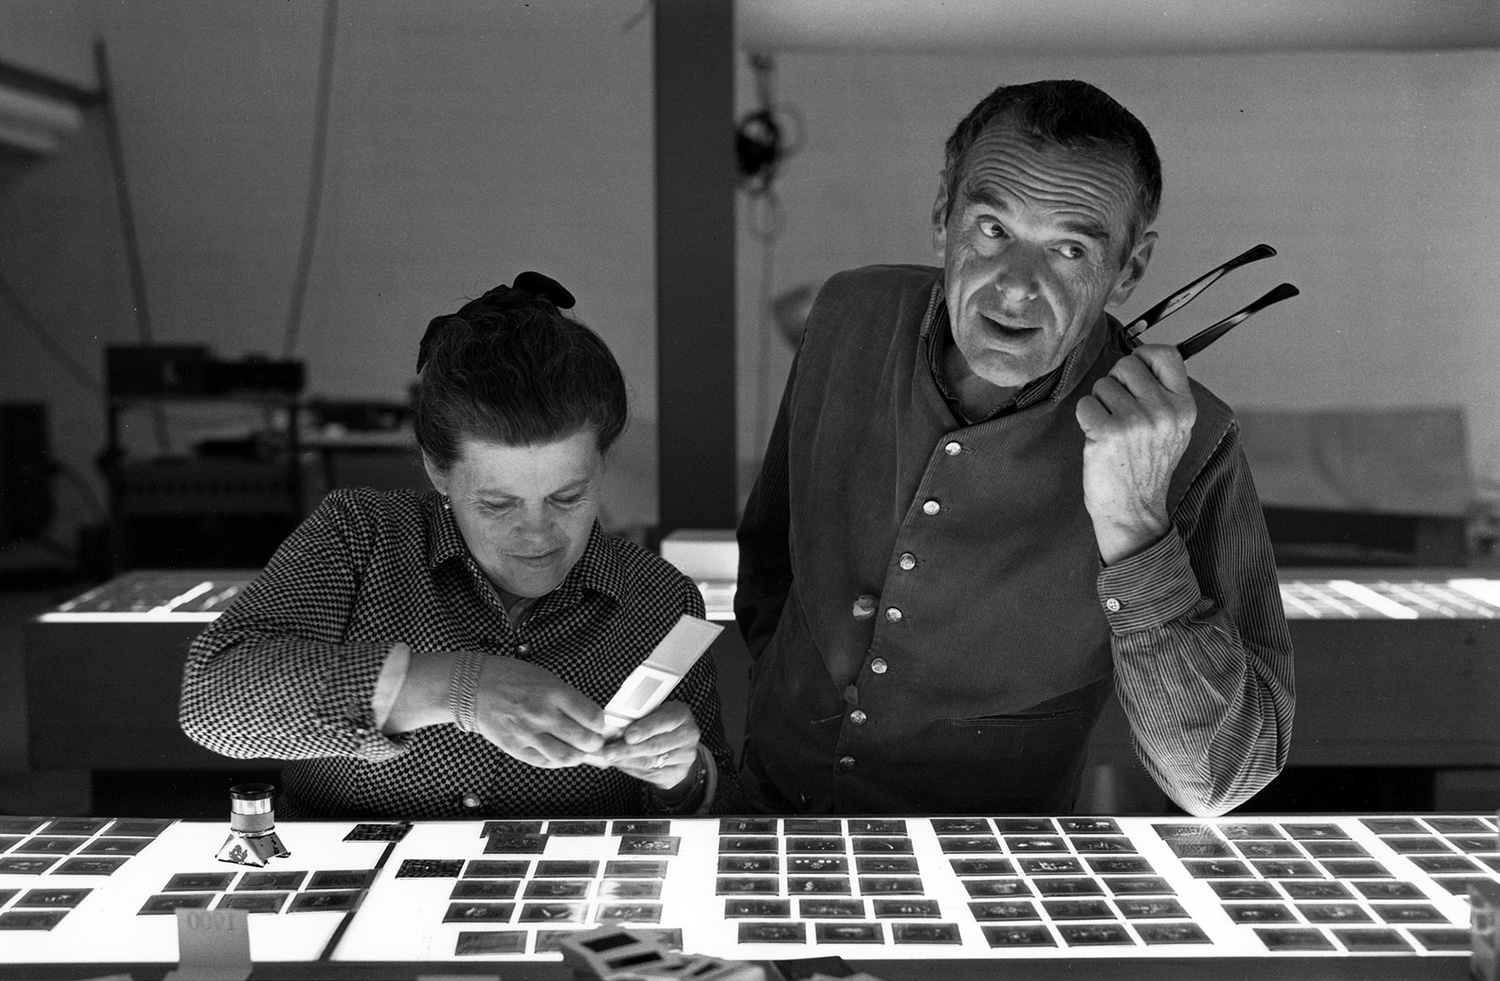 Charles Eams The Eames Translated Their Process Of Discovery Into